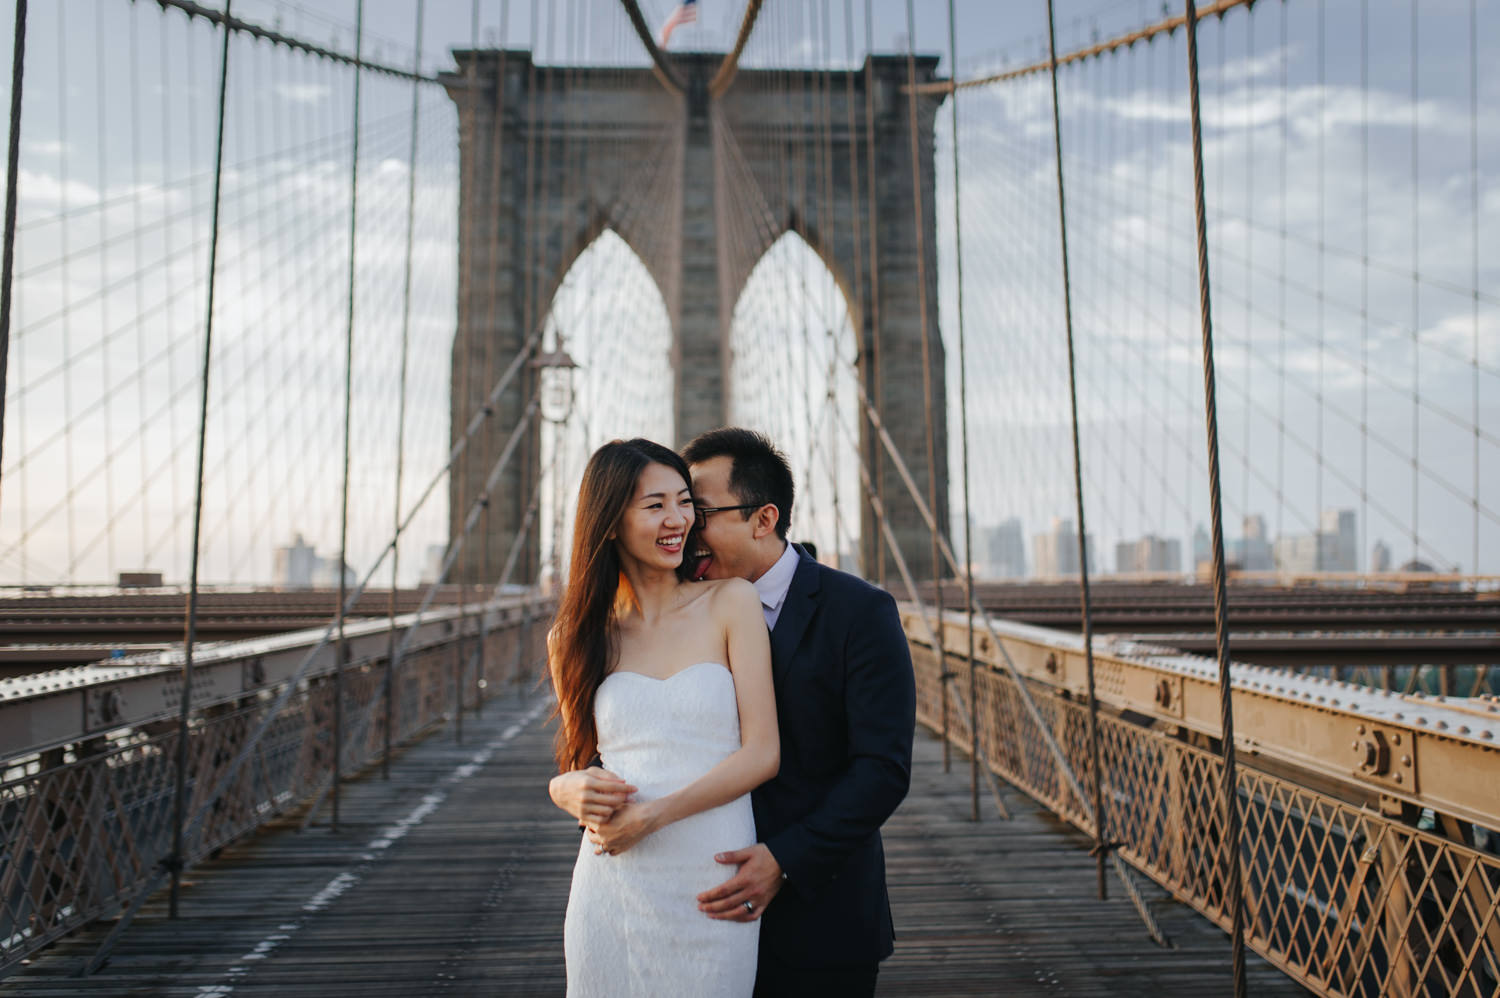 New York Engagement Photo Session on the Brooklyn Bridge